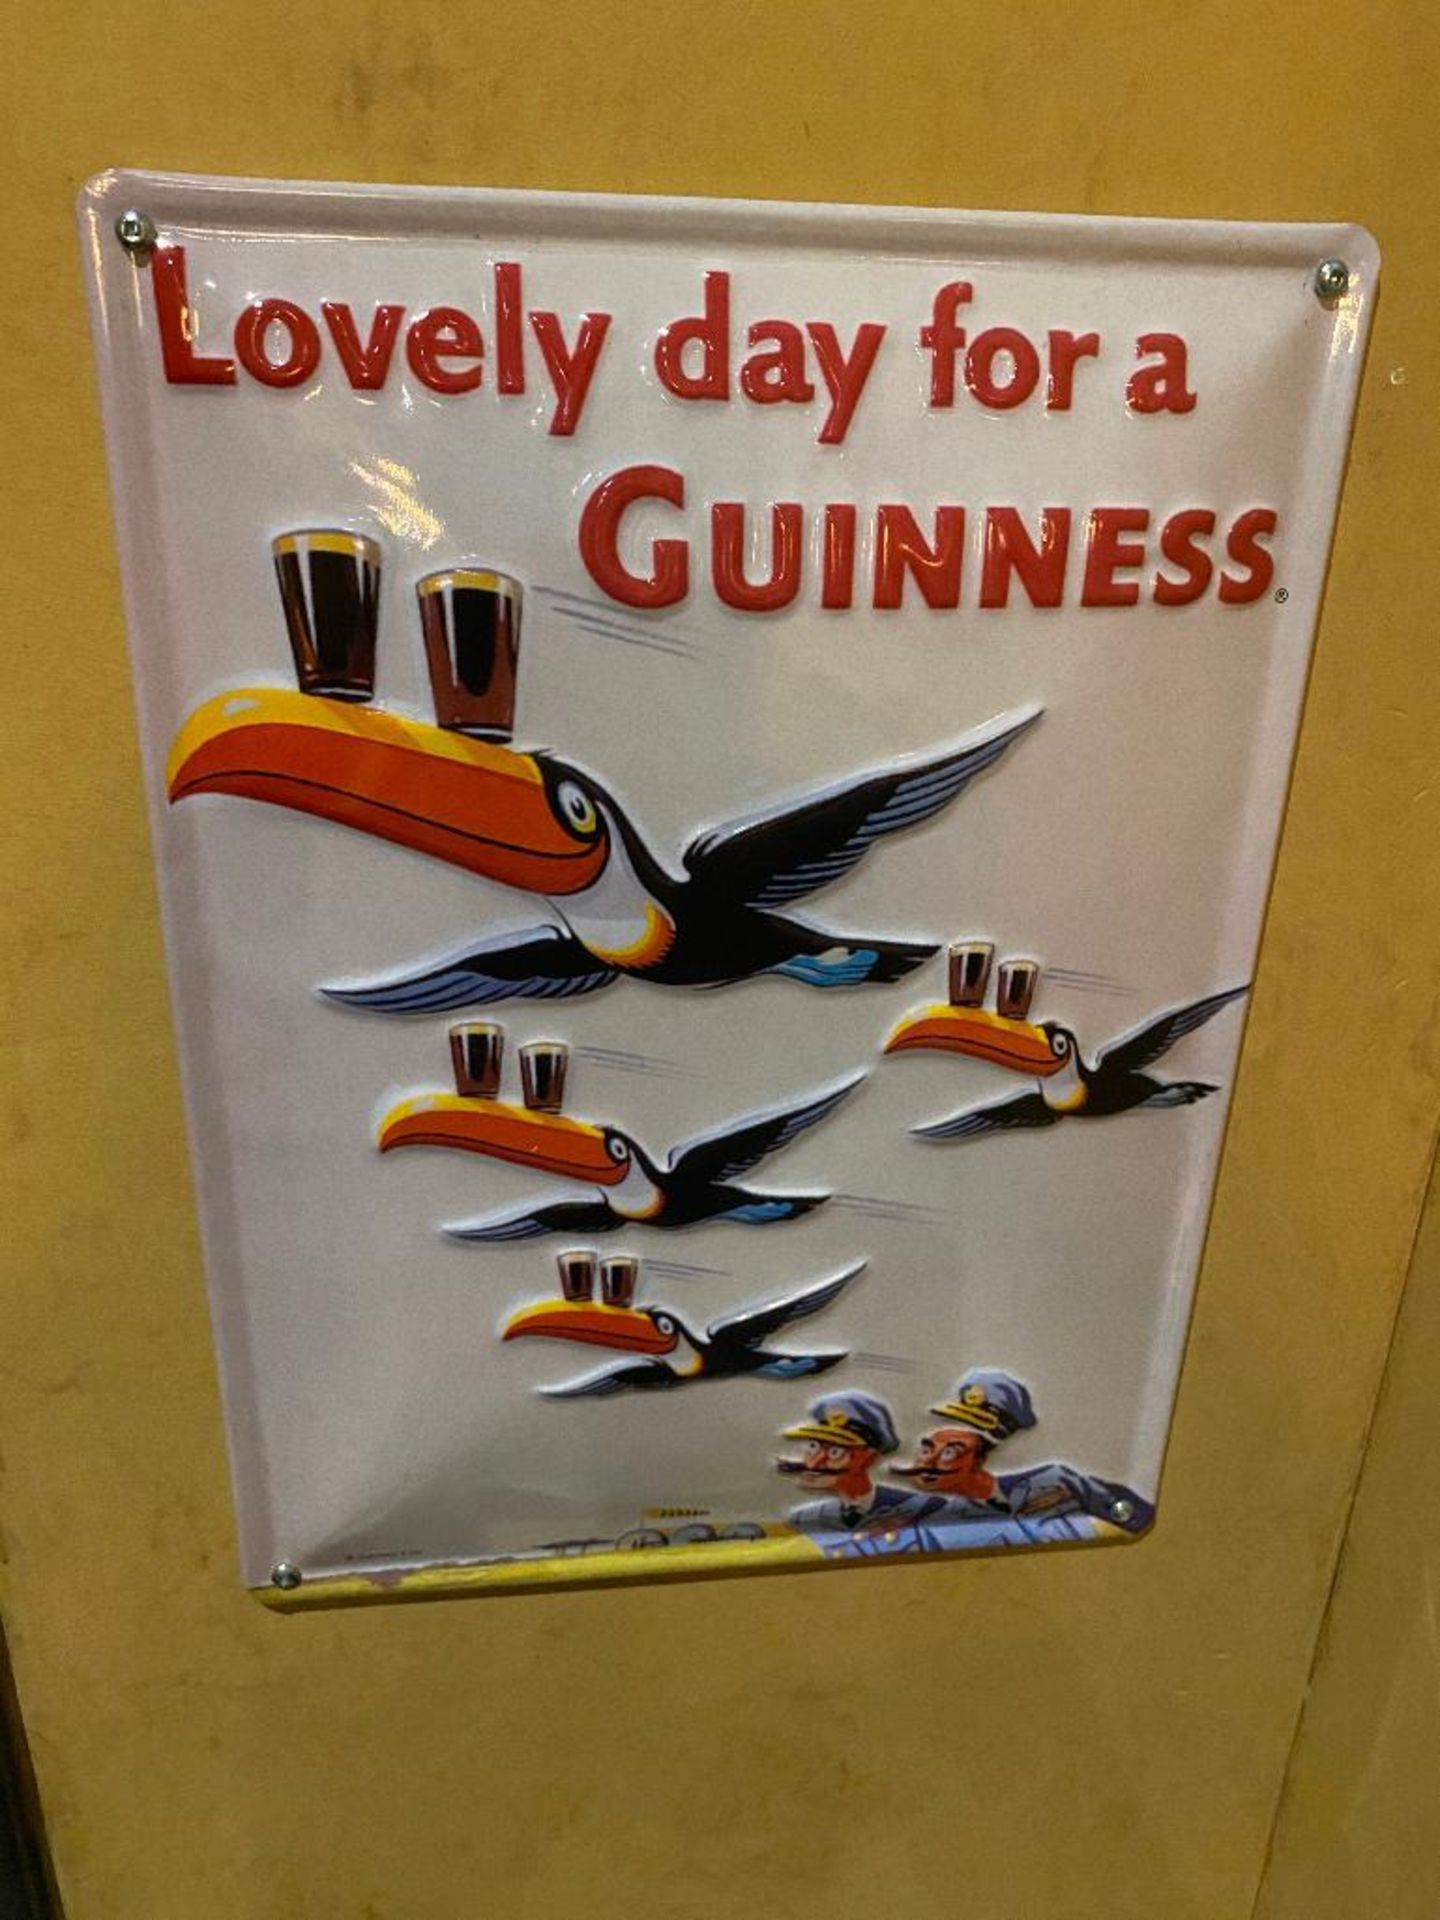 LOT OF (3) FRAMED MEMORABILIA PHOTOS & (1) METAL GUINNESS ADVERTISING SIGN - NOTE: REQUIRES REMOVAL - Image 4 of 4